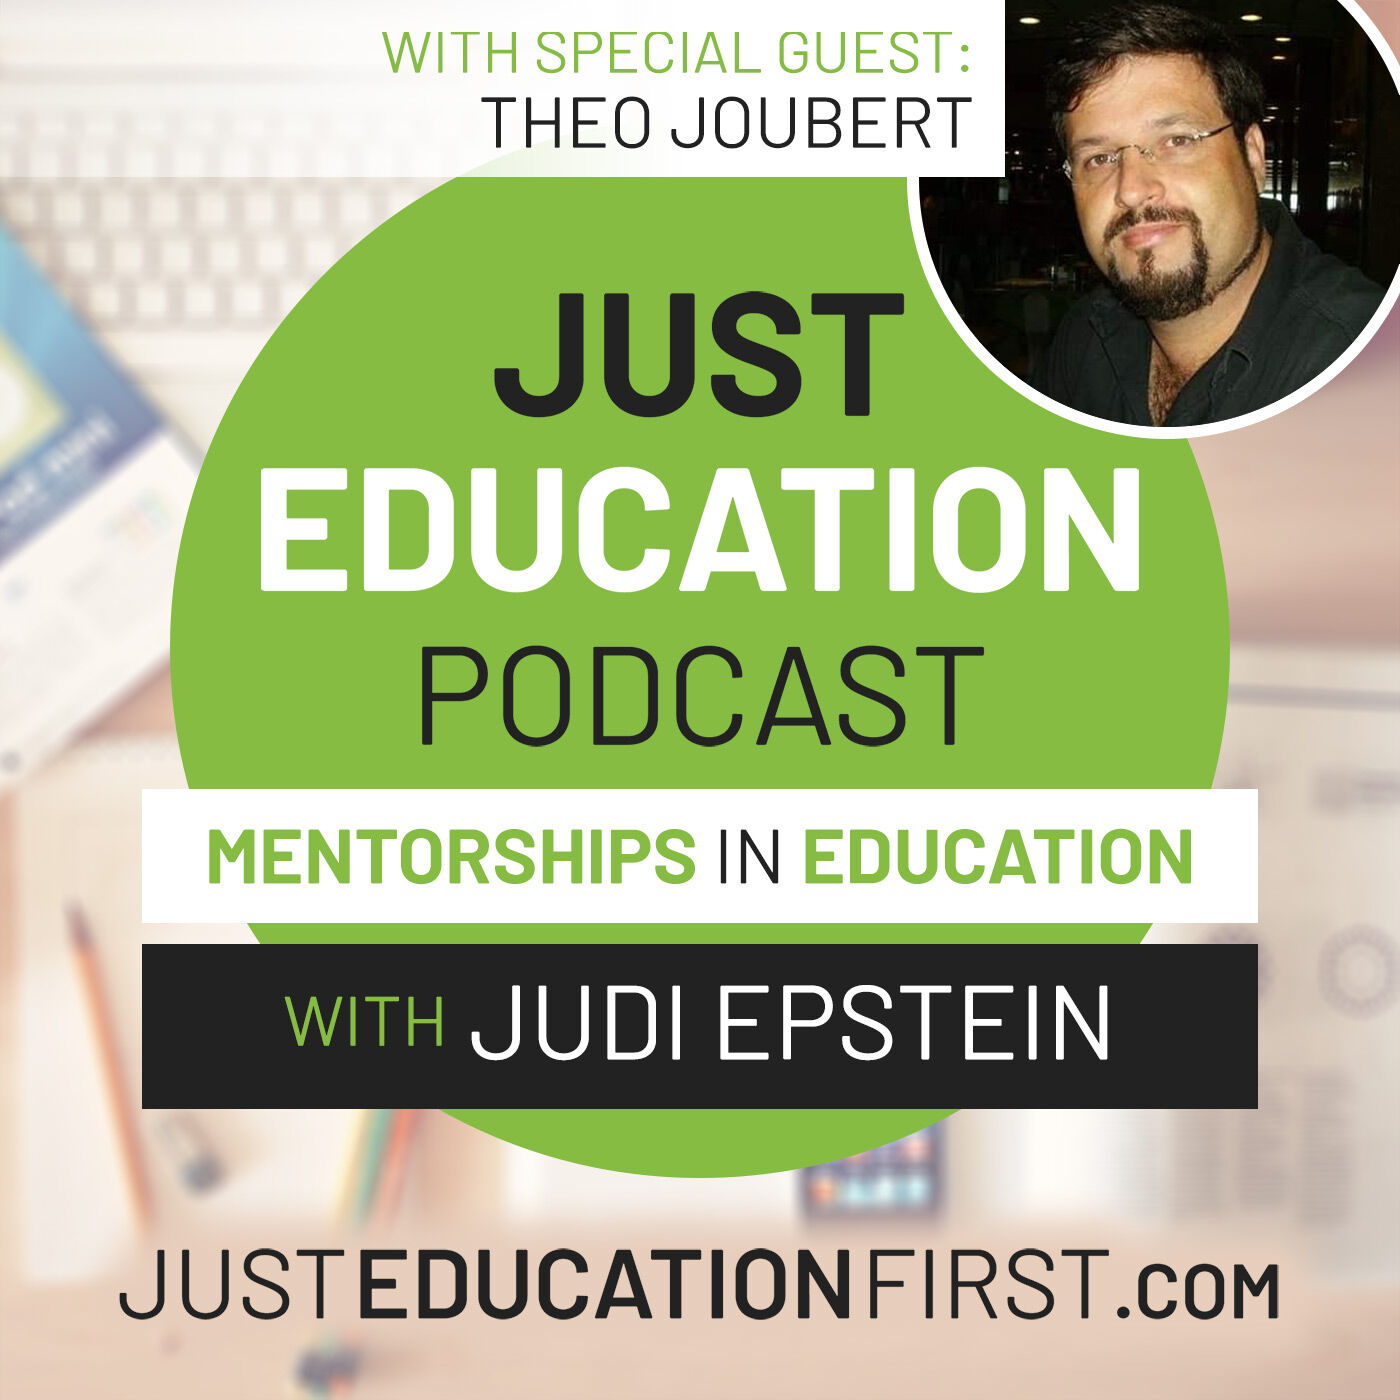 Episode 31 - Theo Joubert | Powered by Your Heart!